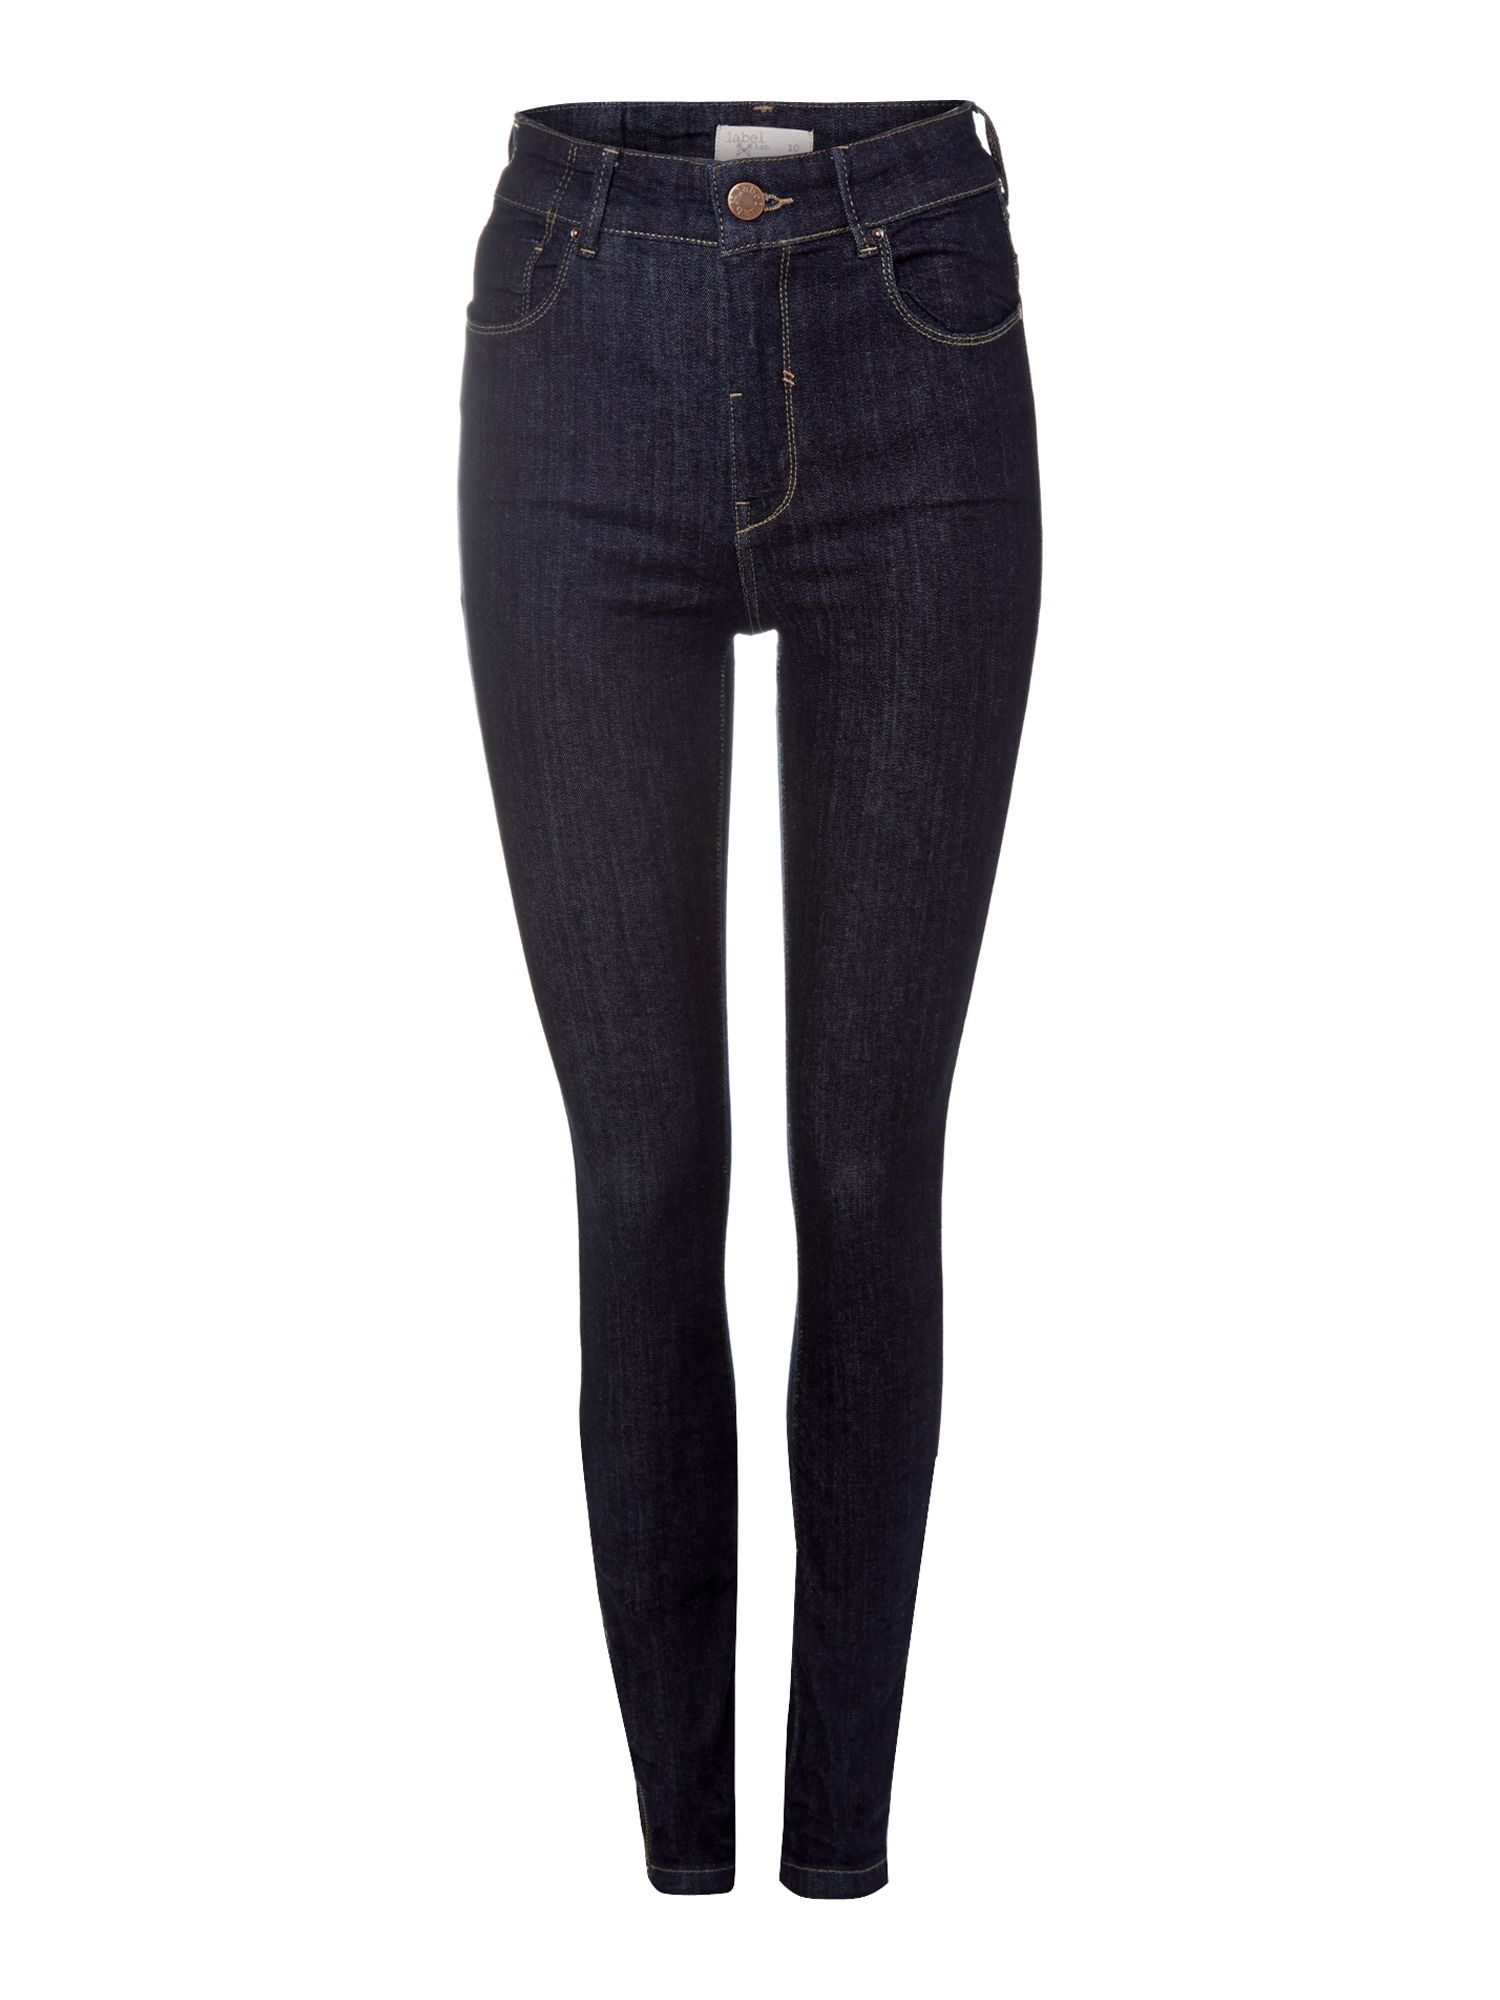 Thorn high waisted skinny jeans